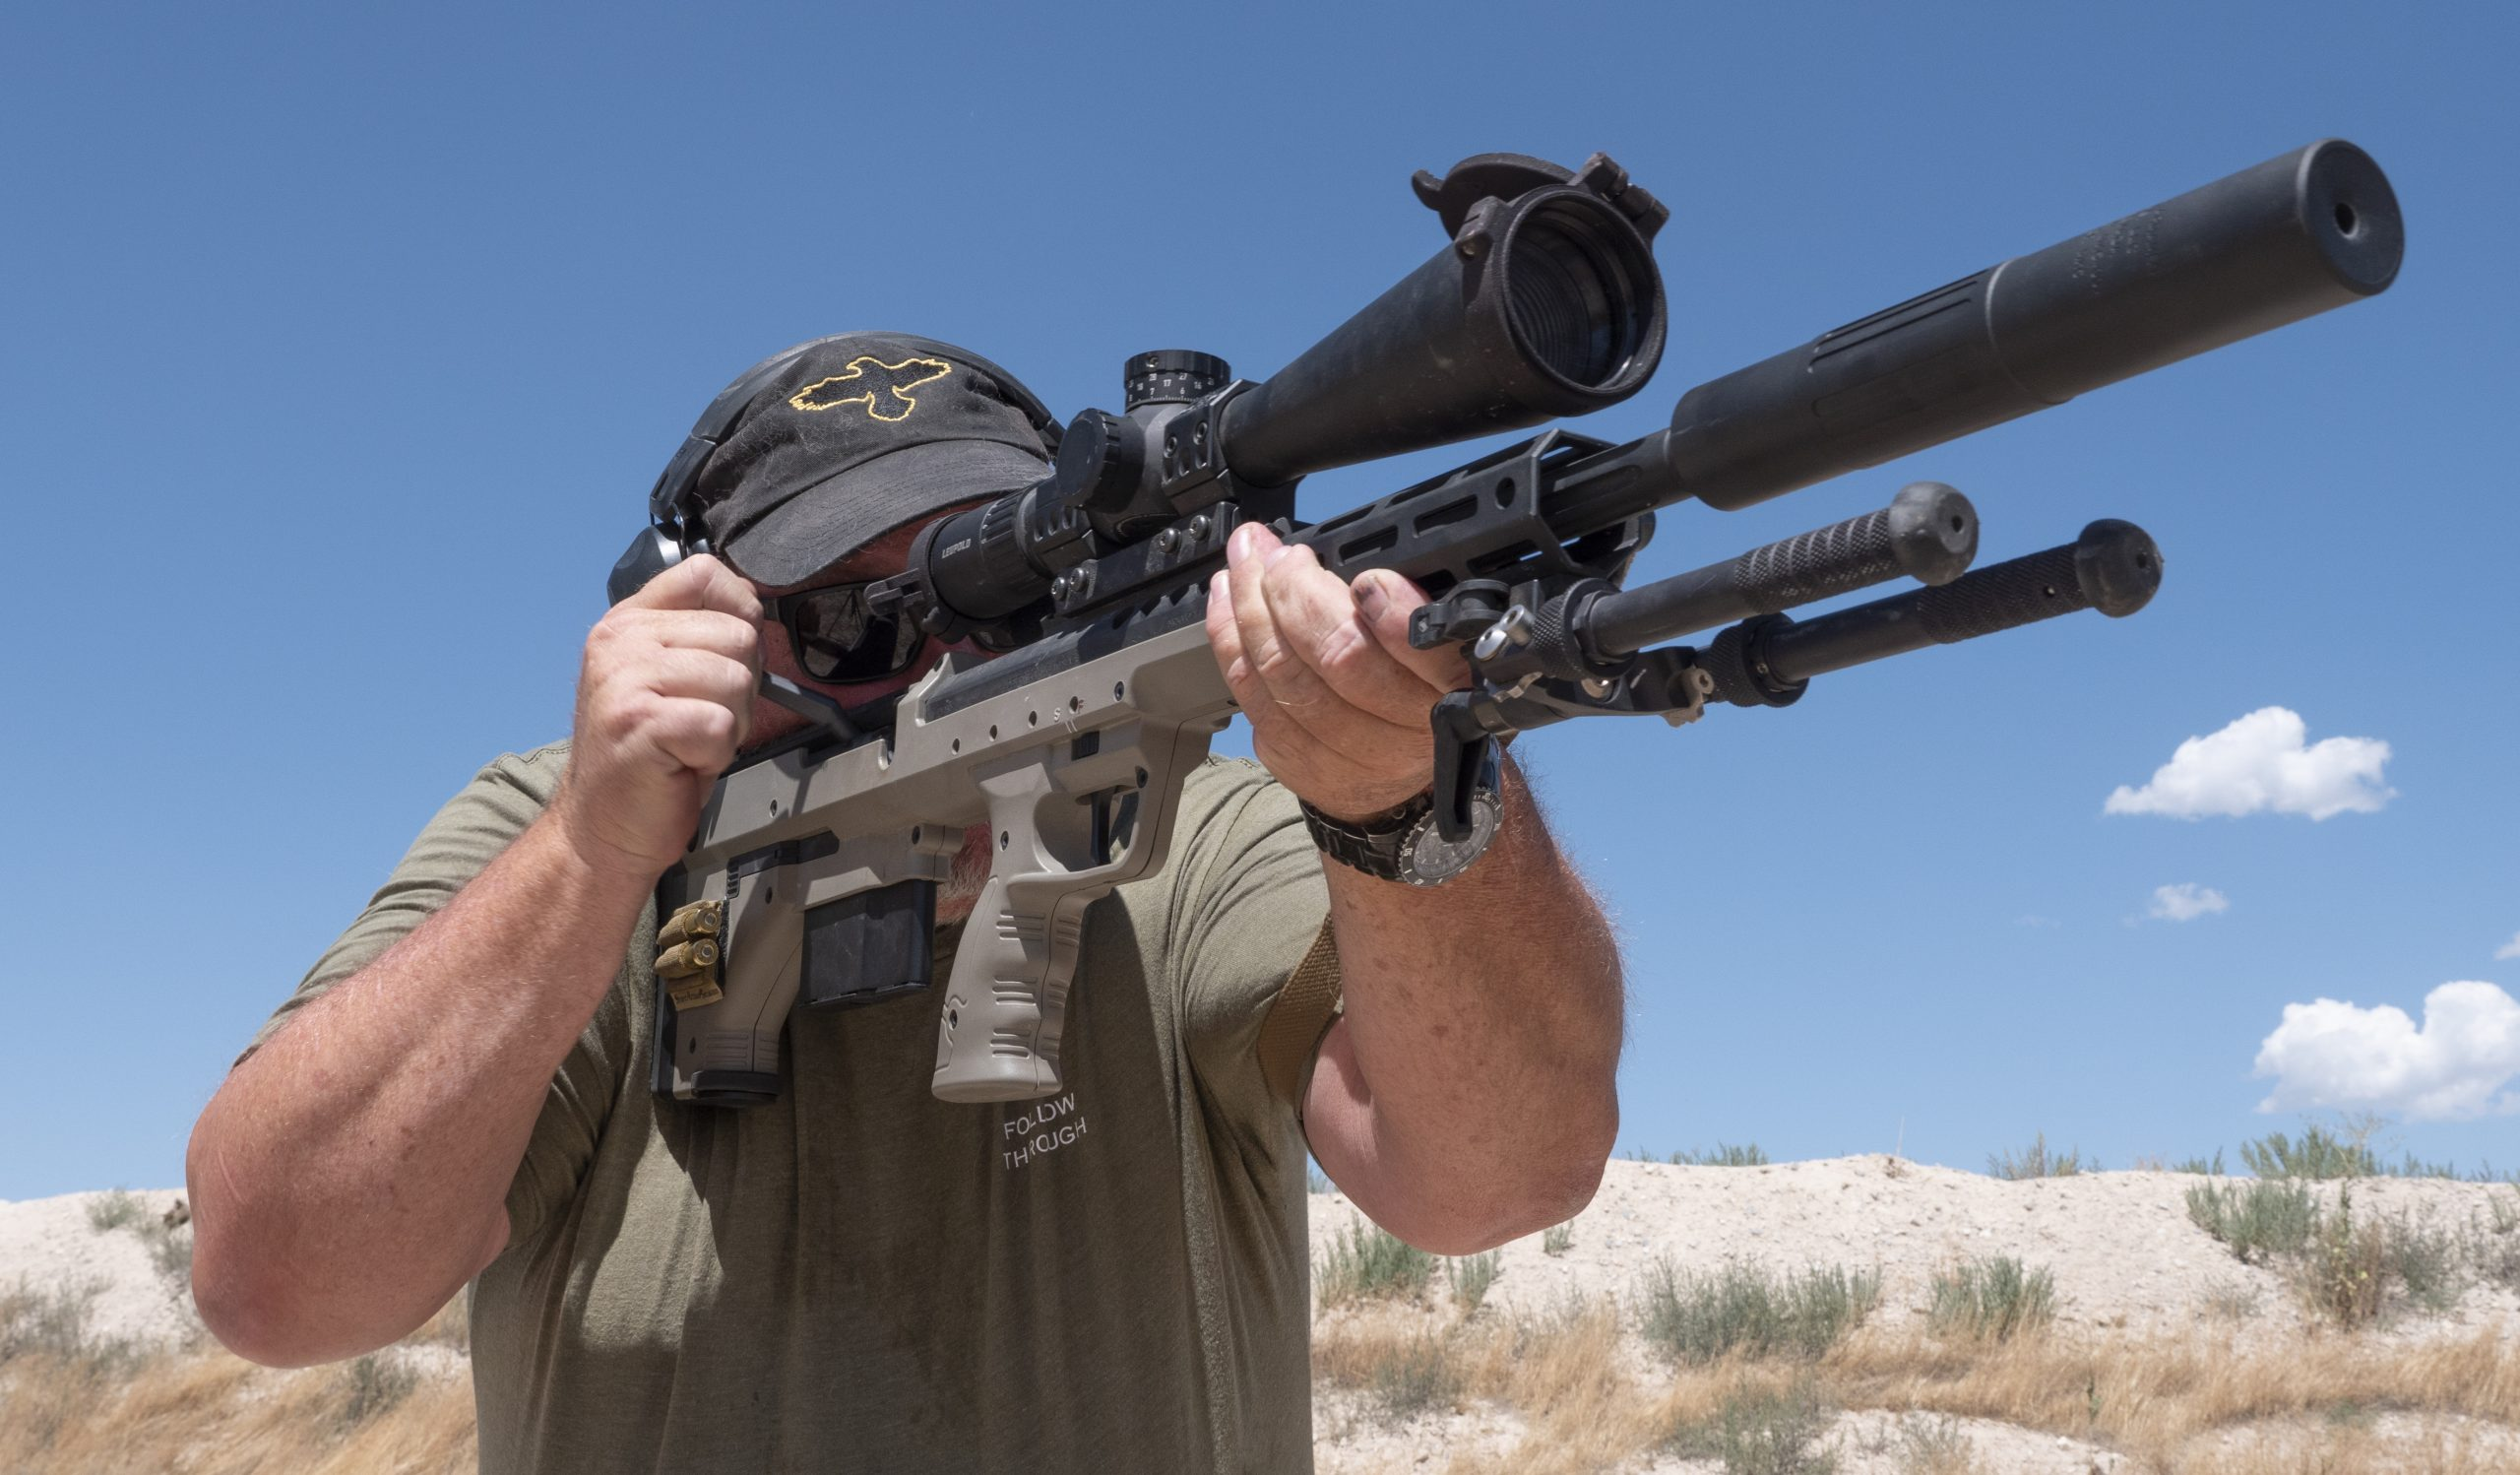 Is 6.5 better than 308 for Law Enforcement Precision Rifles?